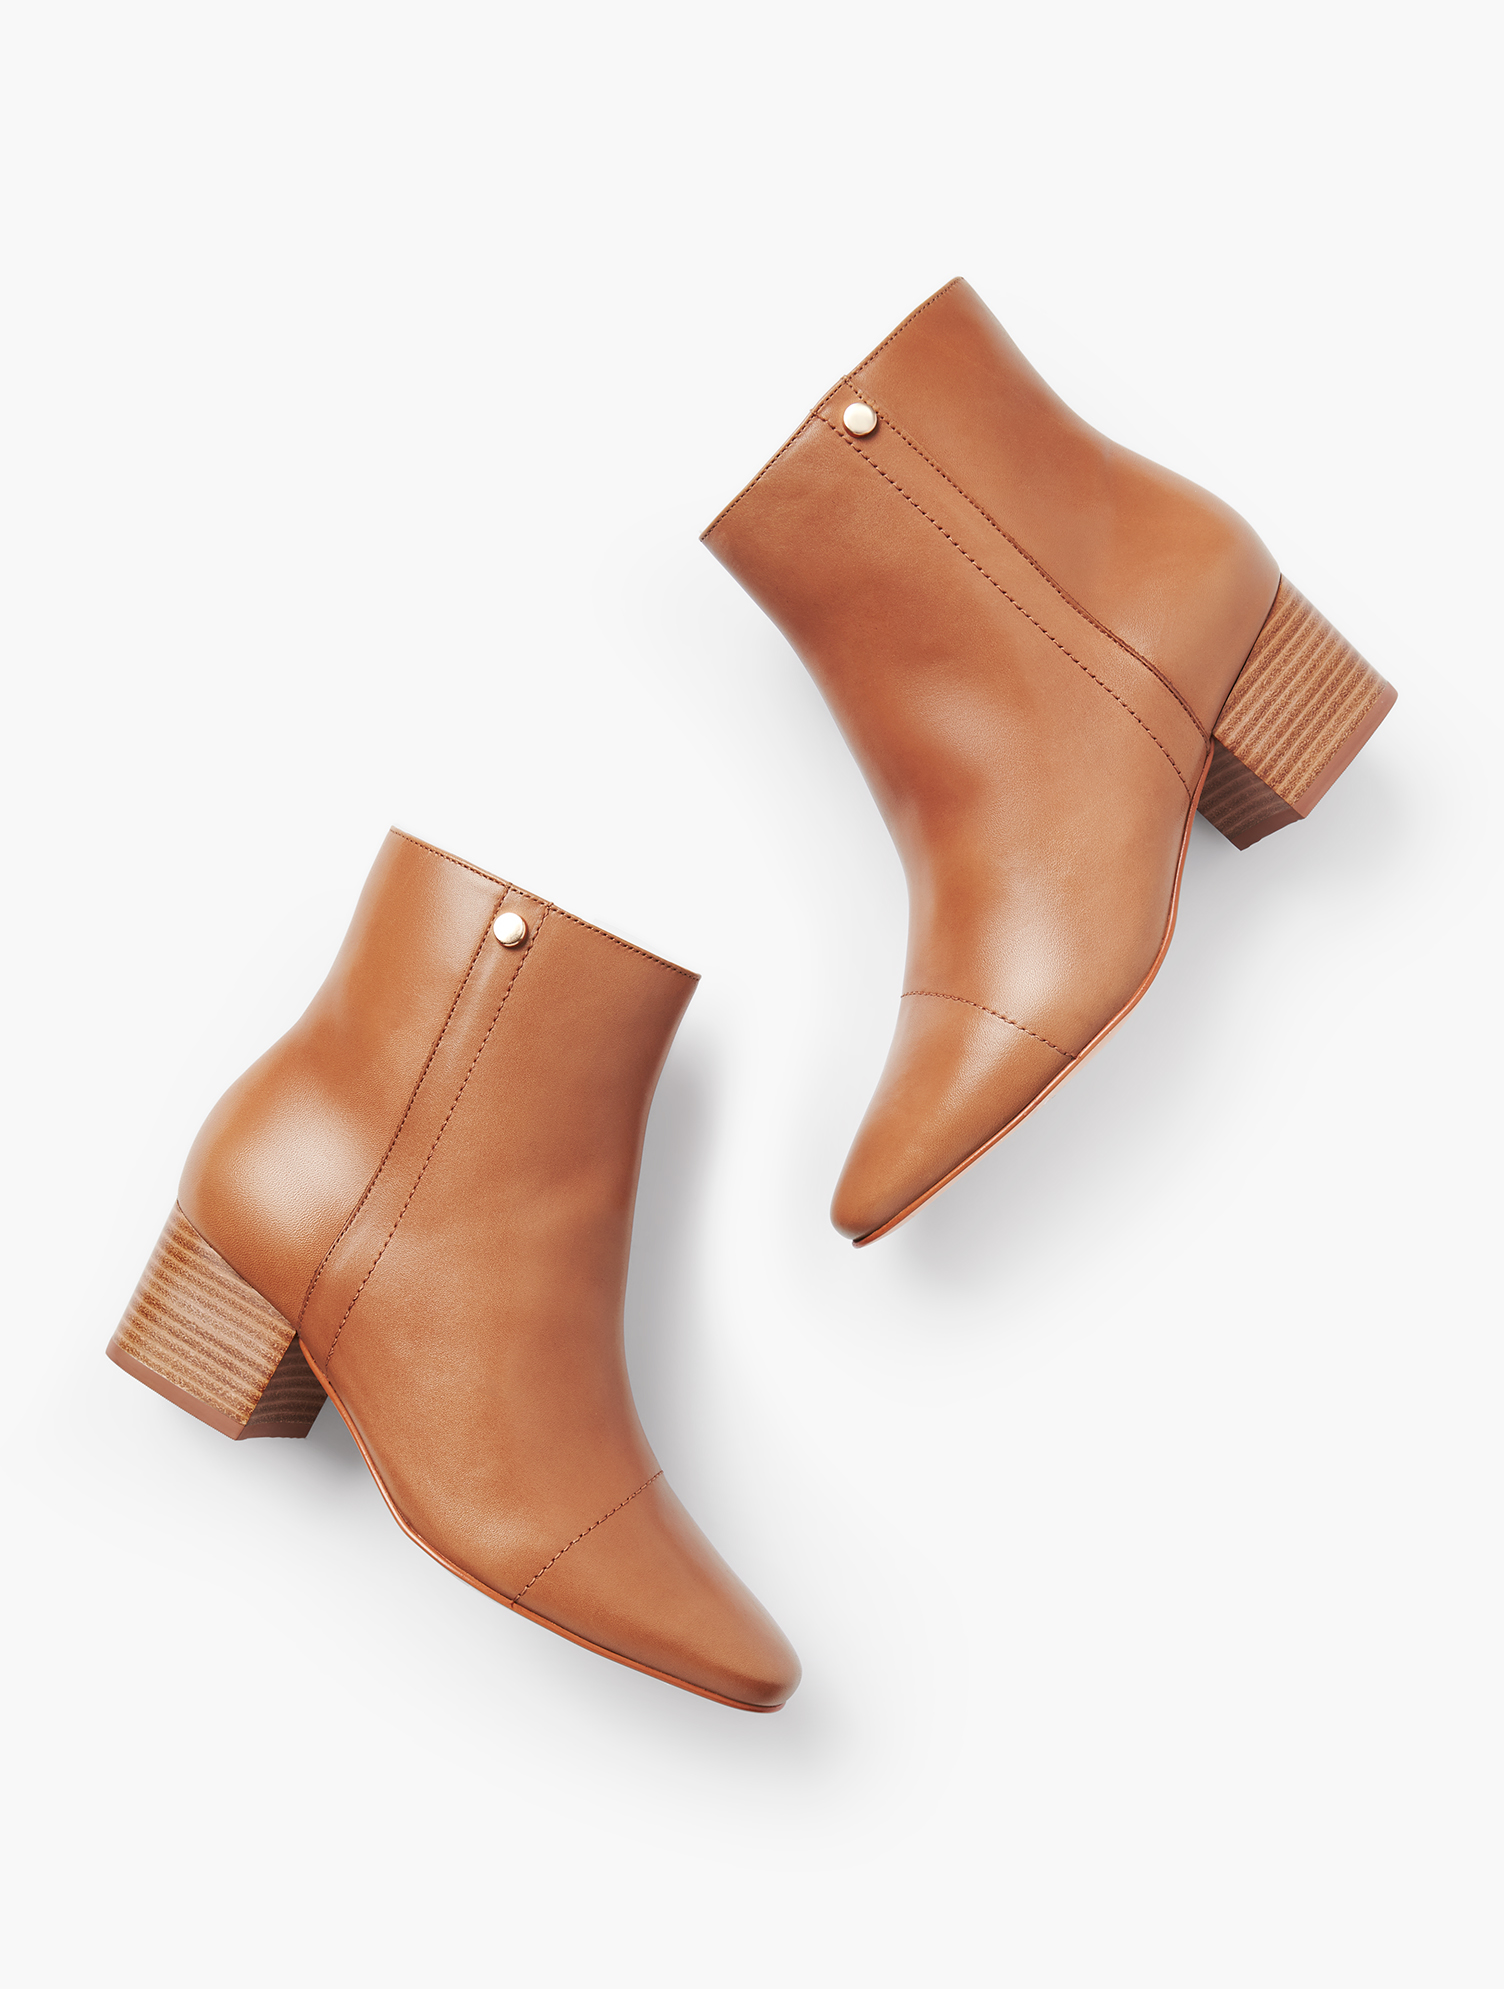 Classic block-heel booties, updated with a stylish cap toe. Features 2 inches Heel Memory Foam Footbed Breathable Lining Imported Material: 100% Leather Harlow Cap Toe Booties - Dark - 11M Talbots